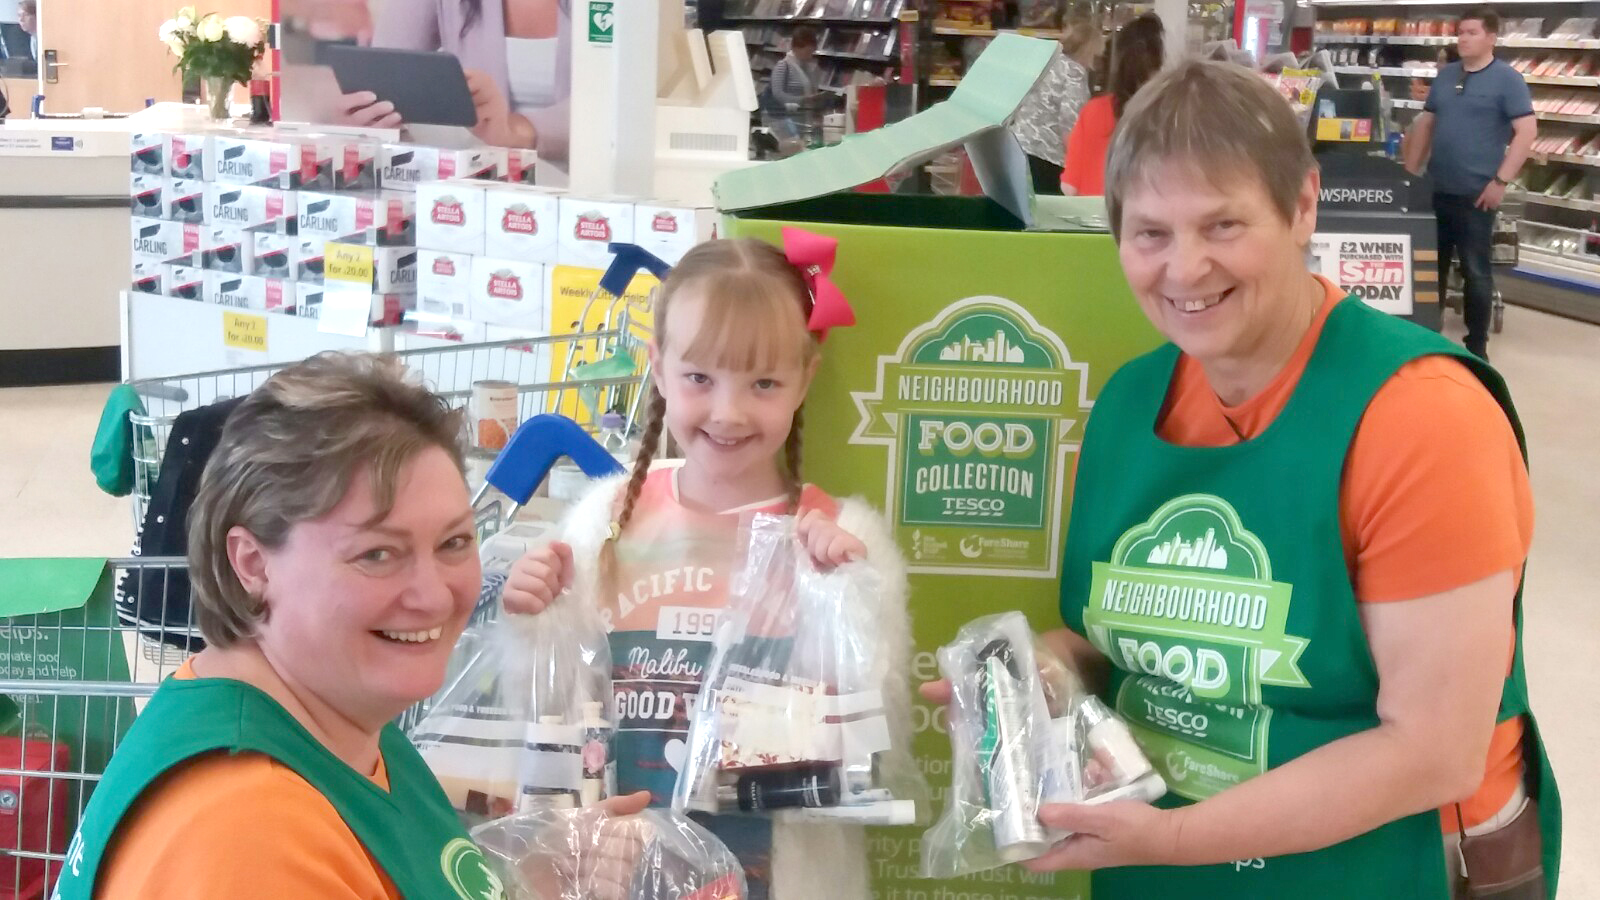 Molly and her Mum Donate 40 Toiletries Packs to Foodbank